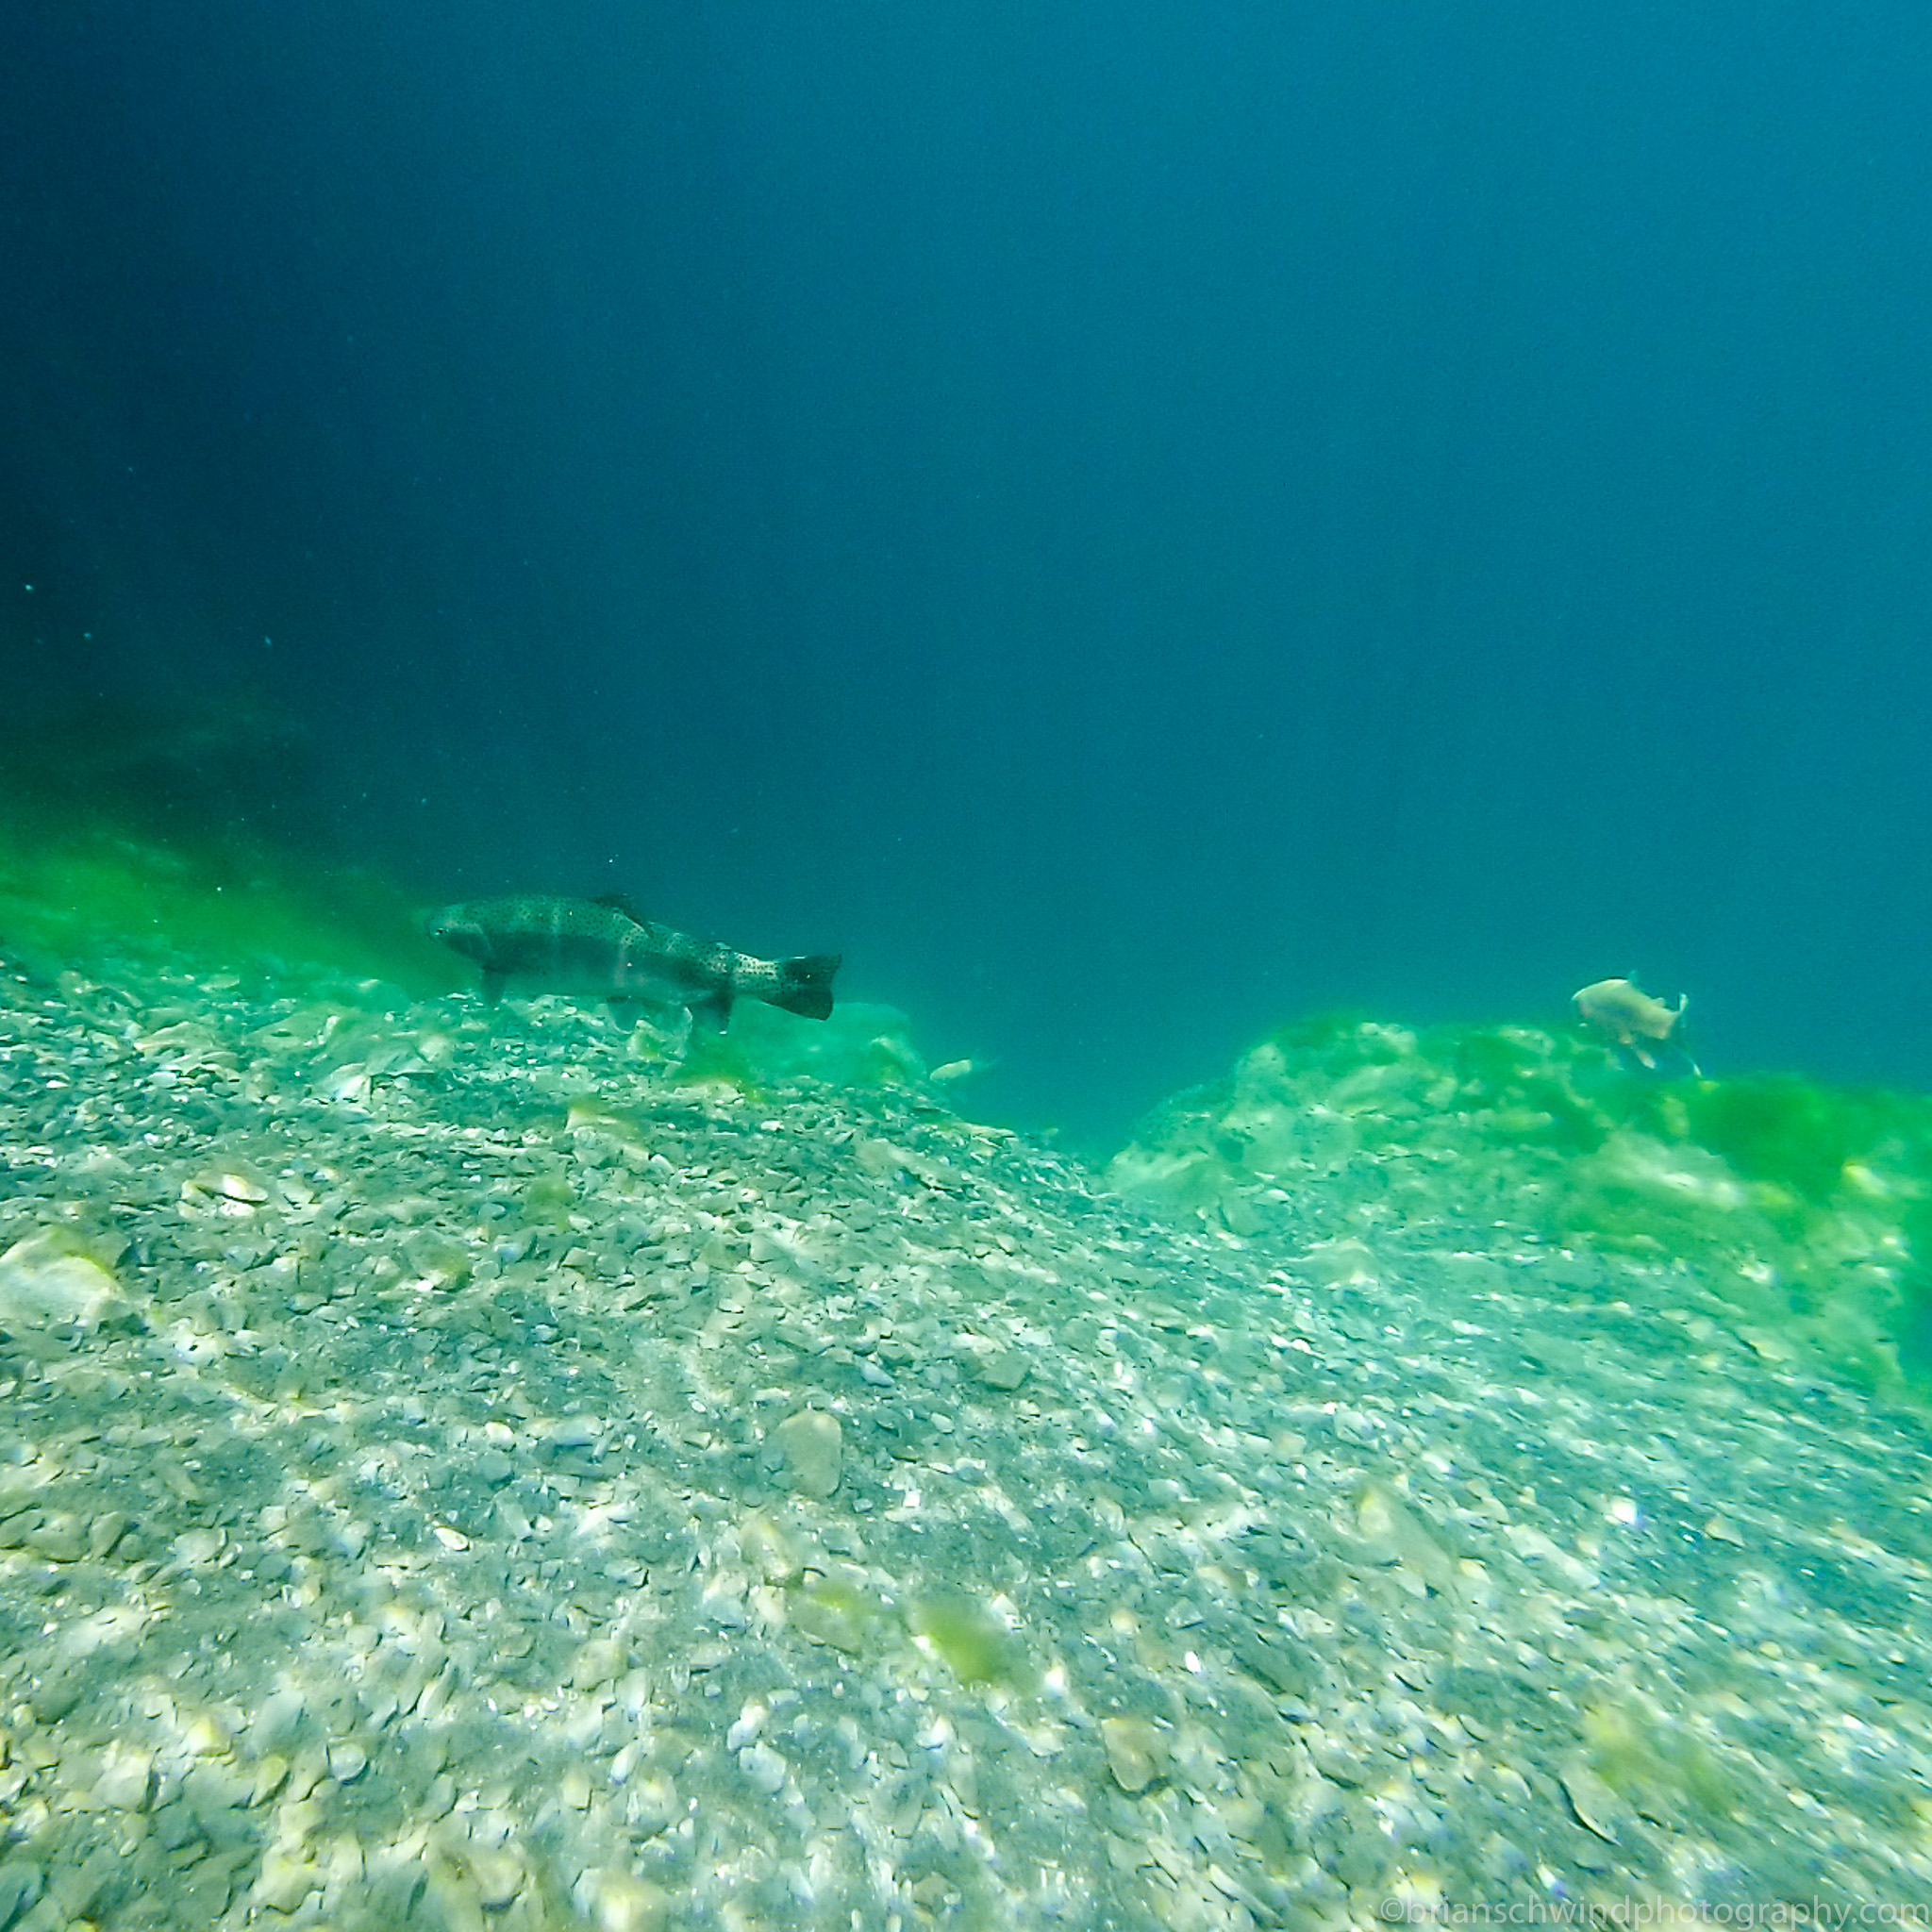 Trout Underwater at DutchSprings 2015